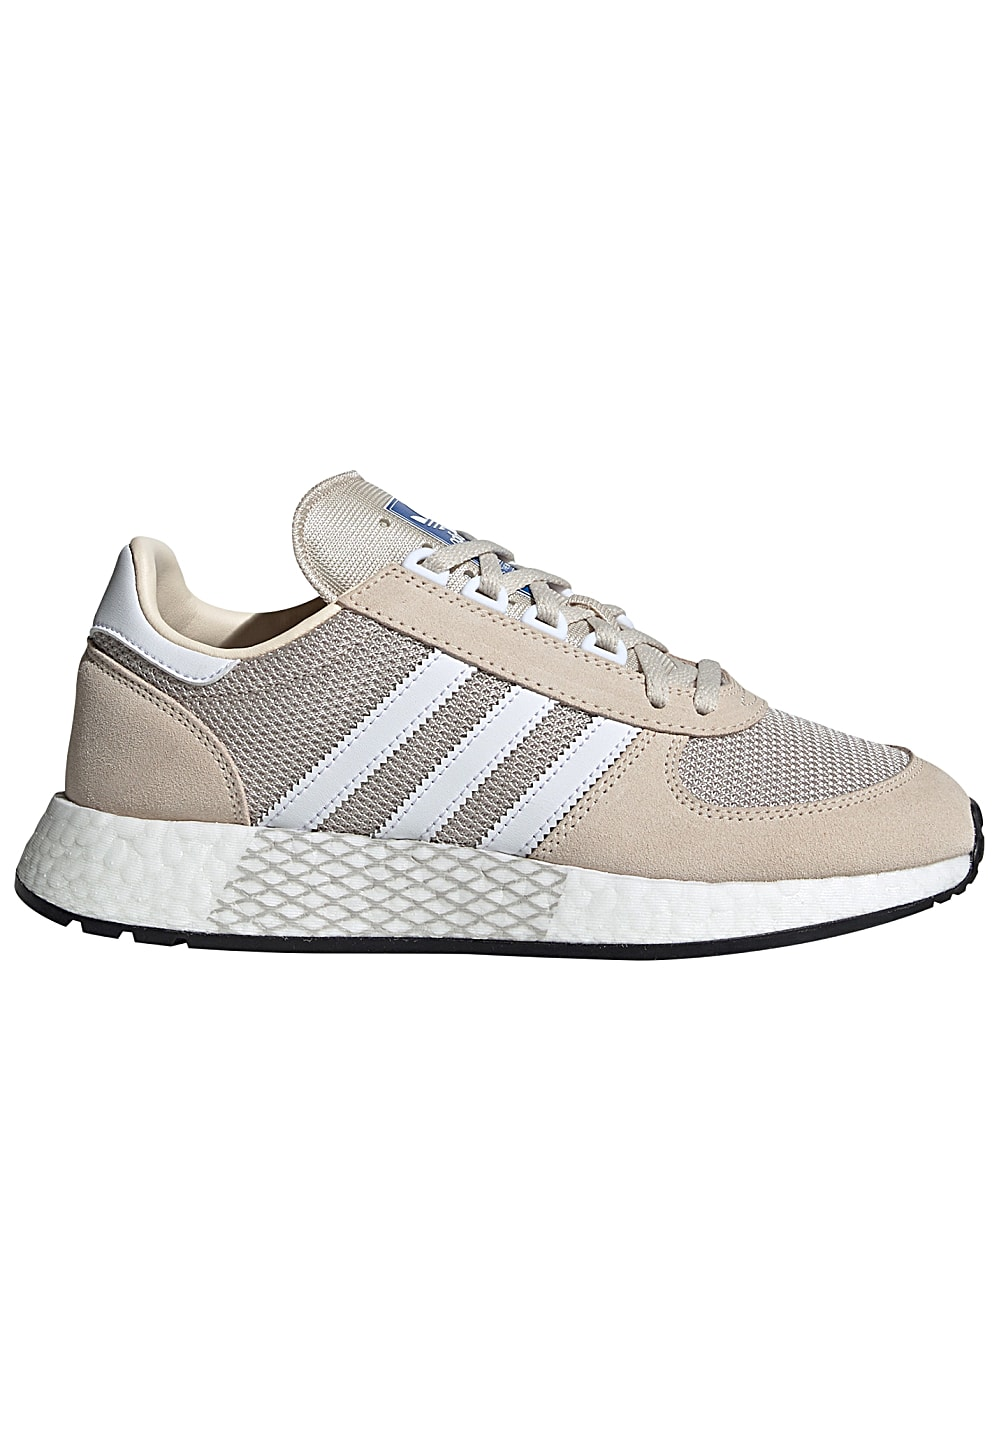 on feet shots of official images limited guantity ADIDAS ORIGINALS Marathon Tech - Sneakers for Women - Beige